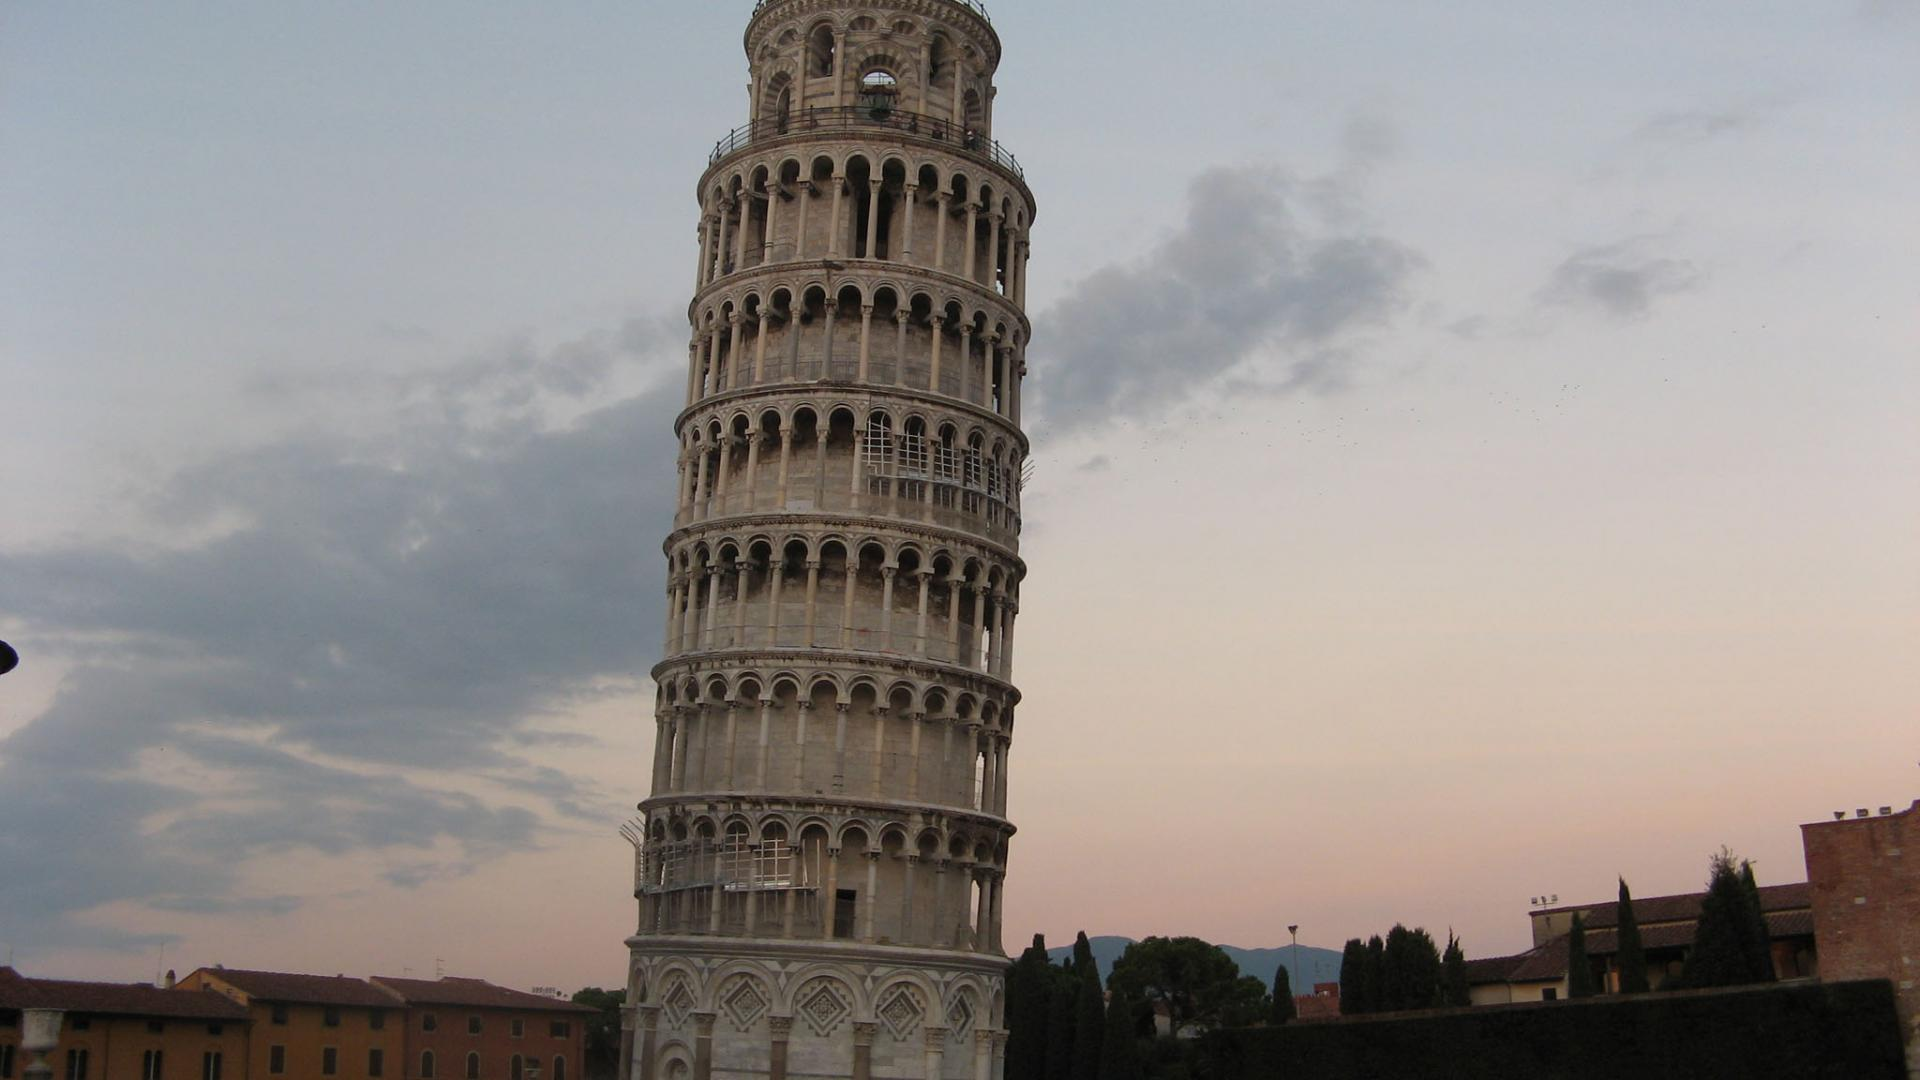 Tower of Pisa High Definition Wallpapers – Travel HD Wallpapers